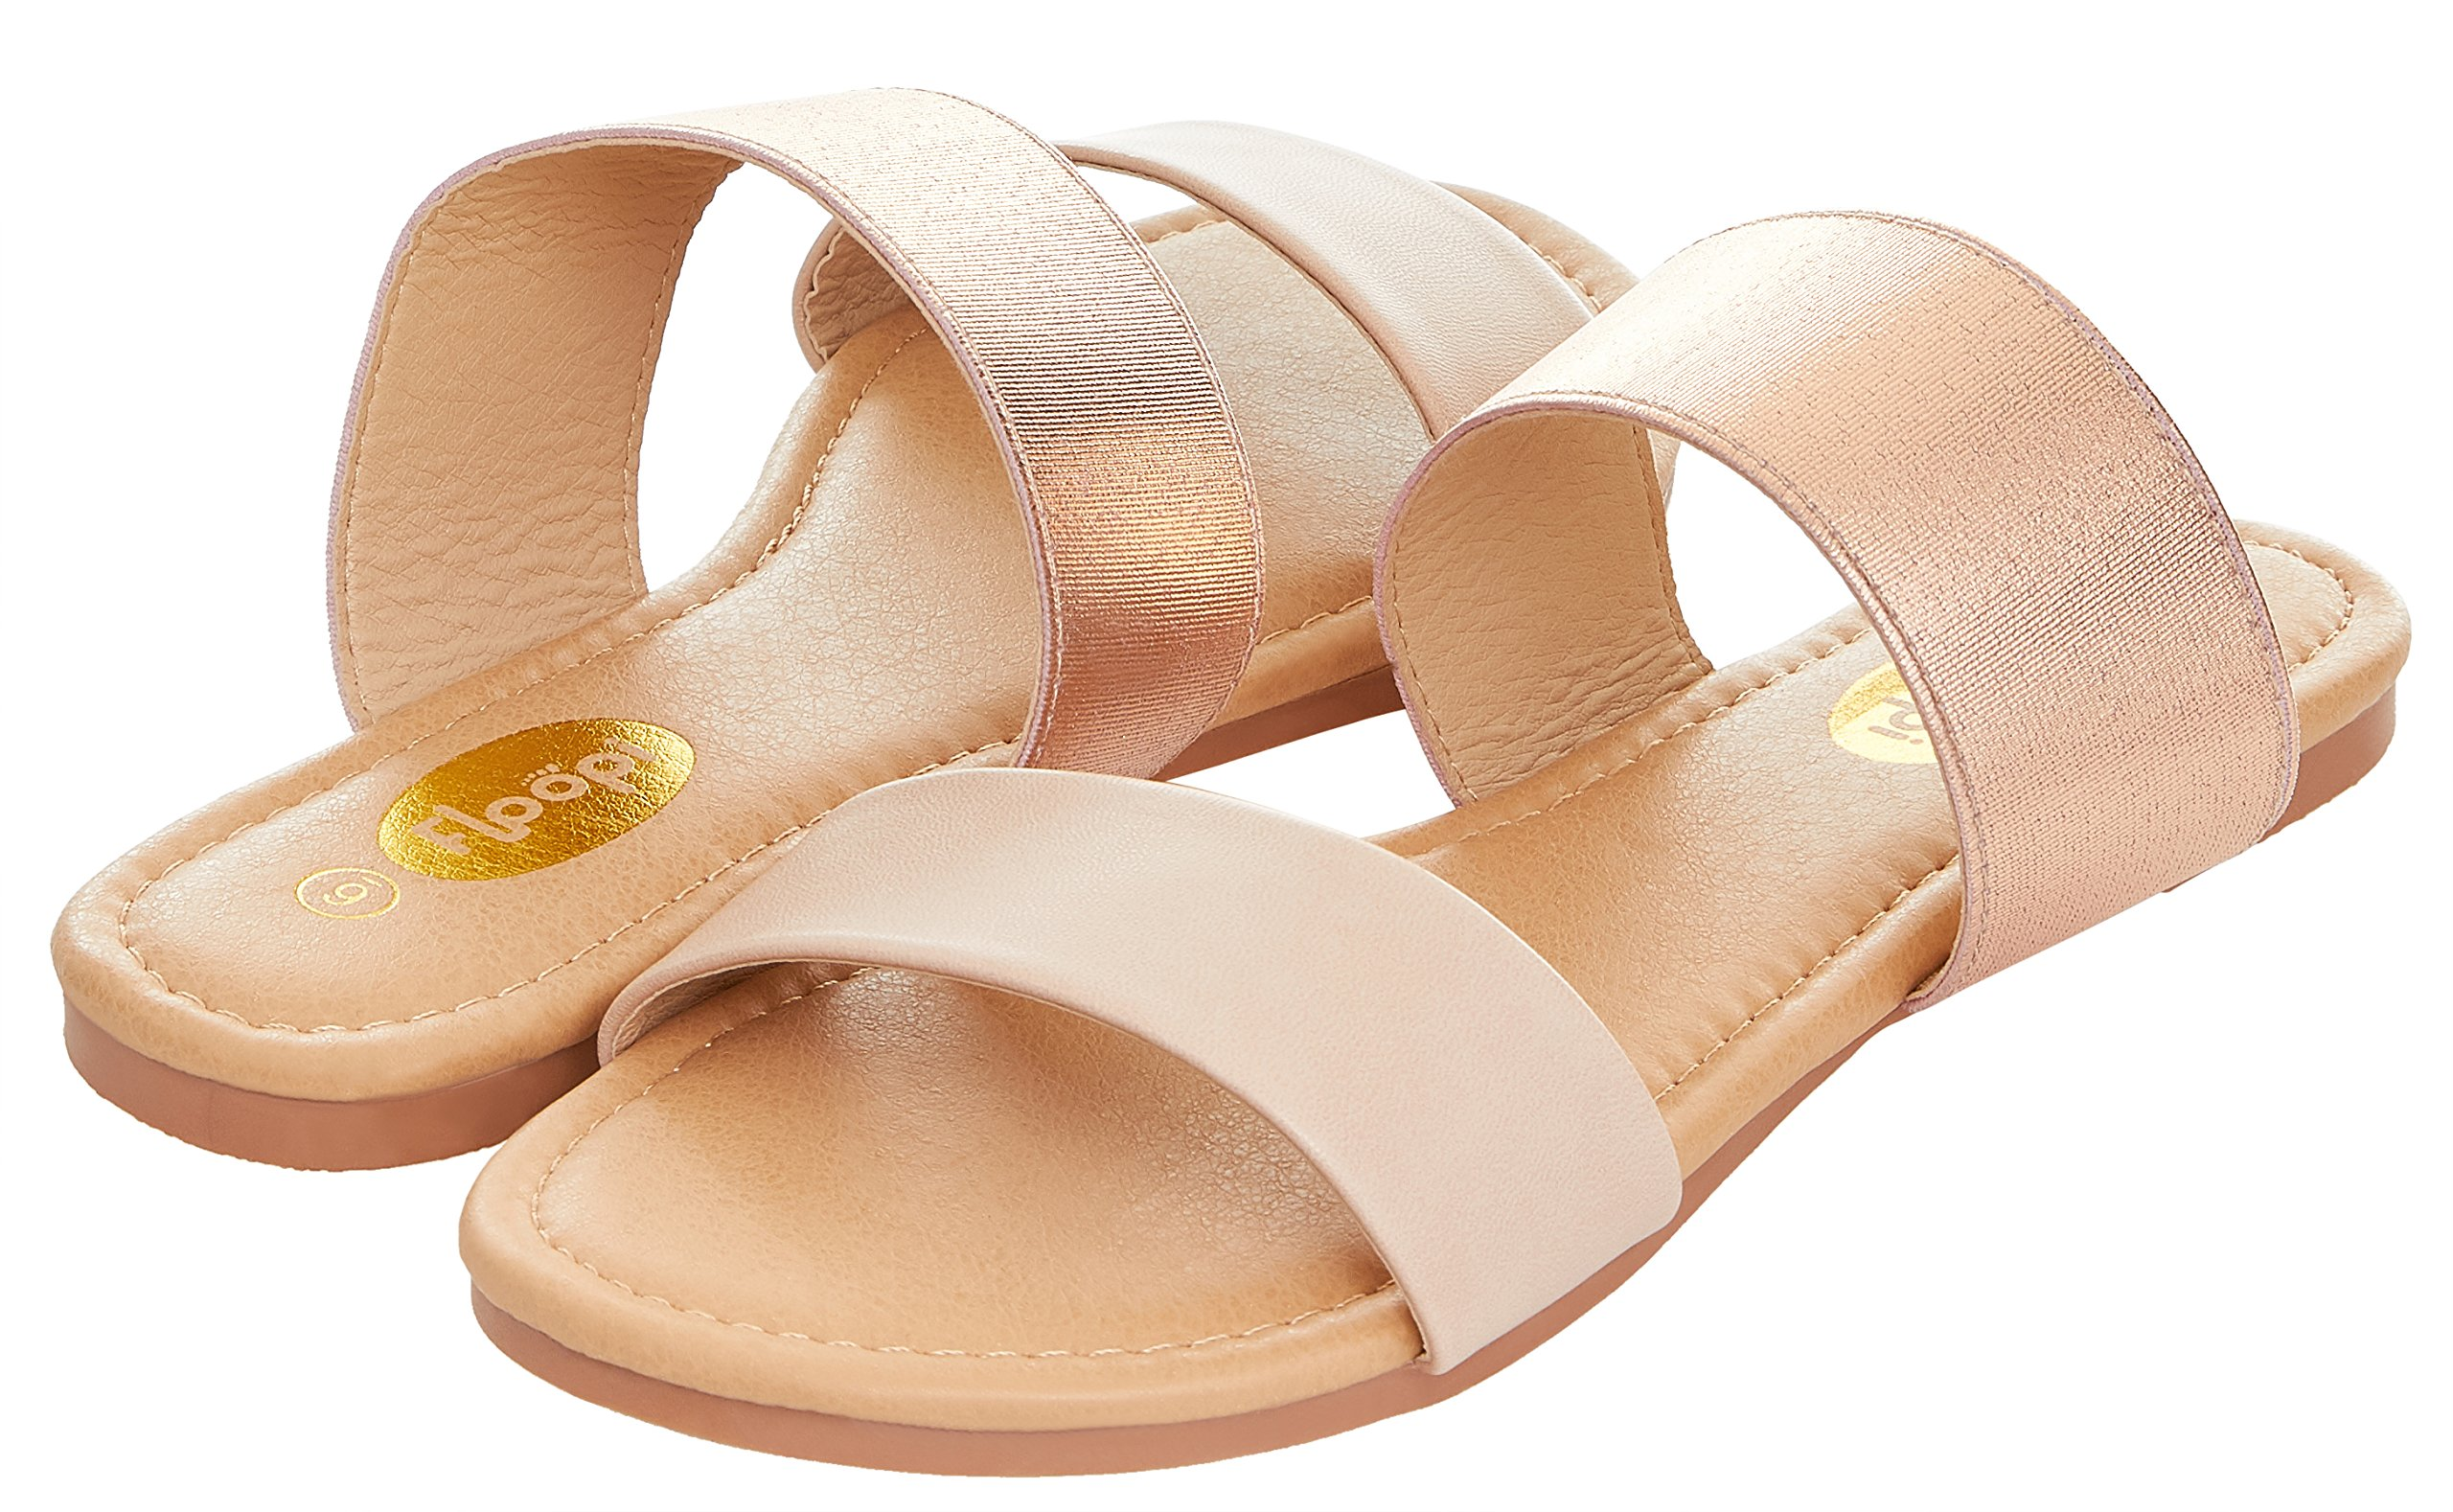 Floopi Womens Summer Wide Elastic Slide Flat Sandal (7, Nude-503)